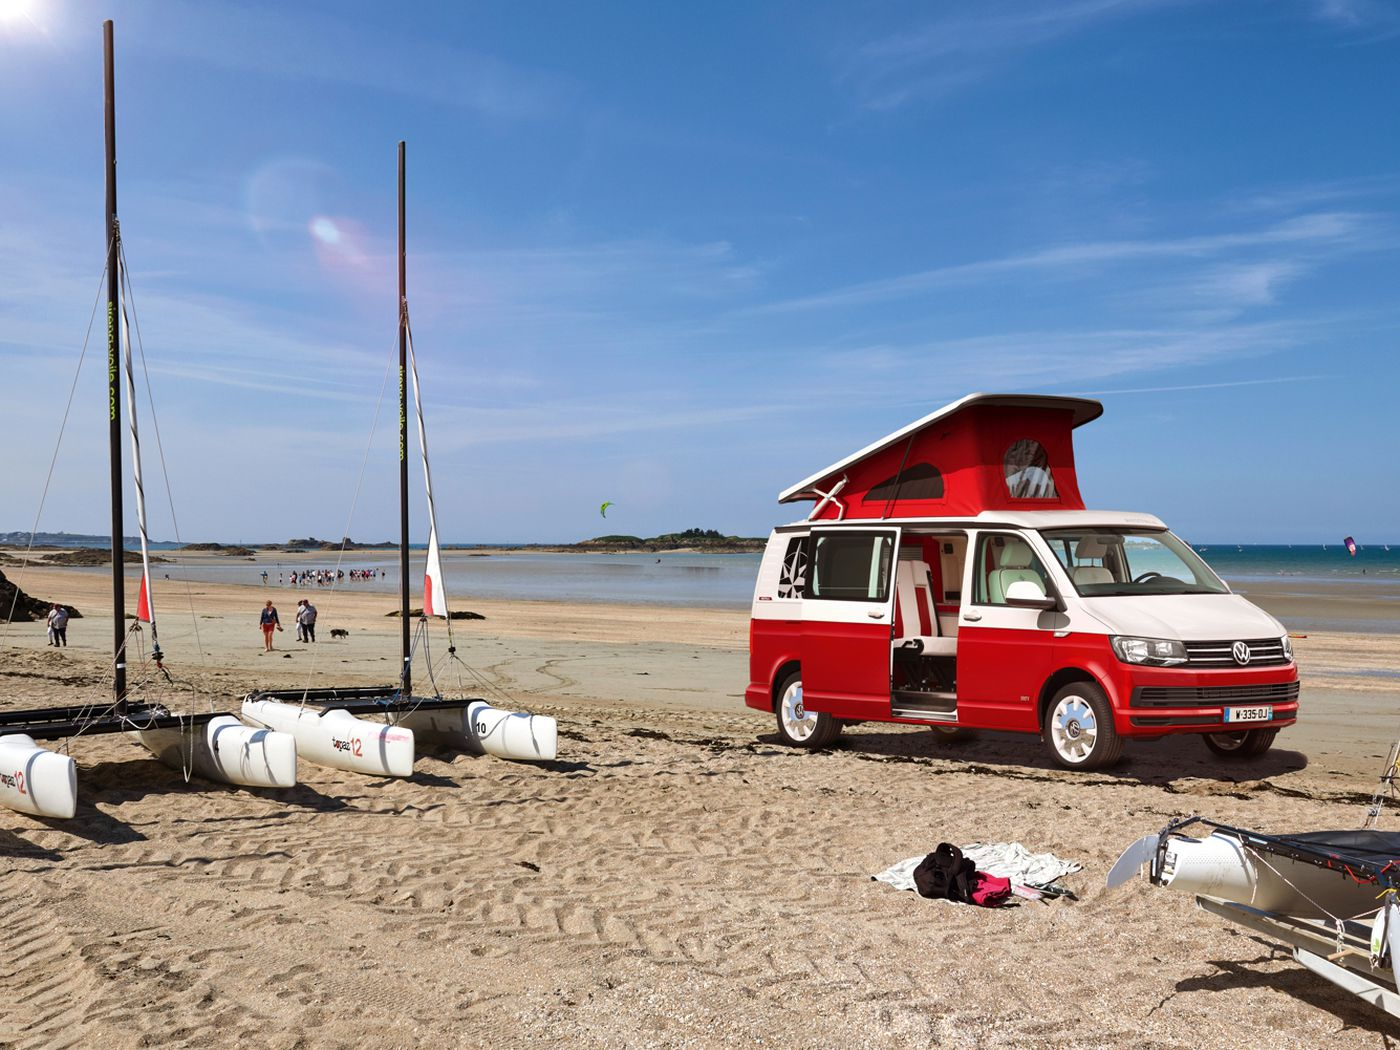 ab6d9d1881 Westfalia camper van is giving us 1950s-diner vibes - Curbed